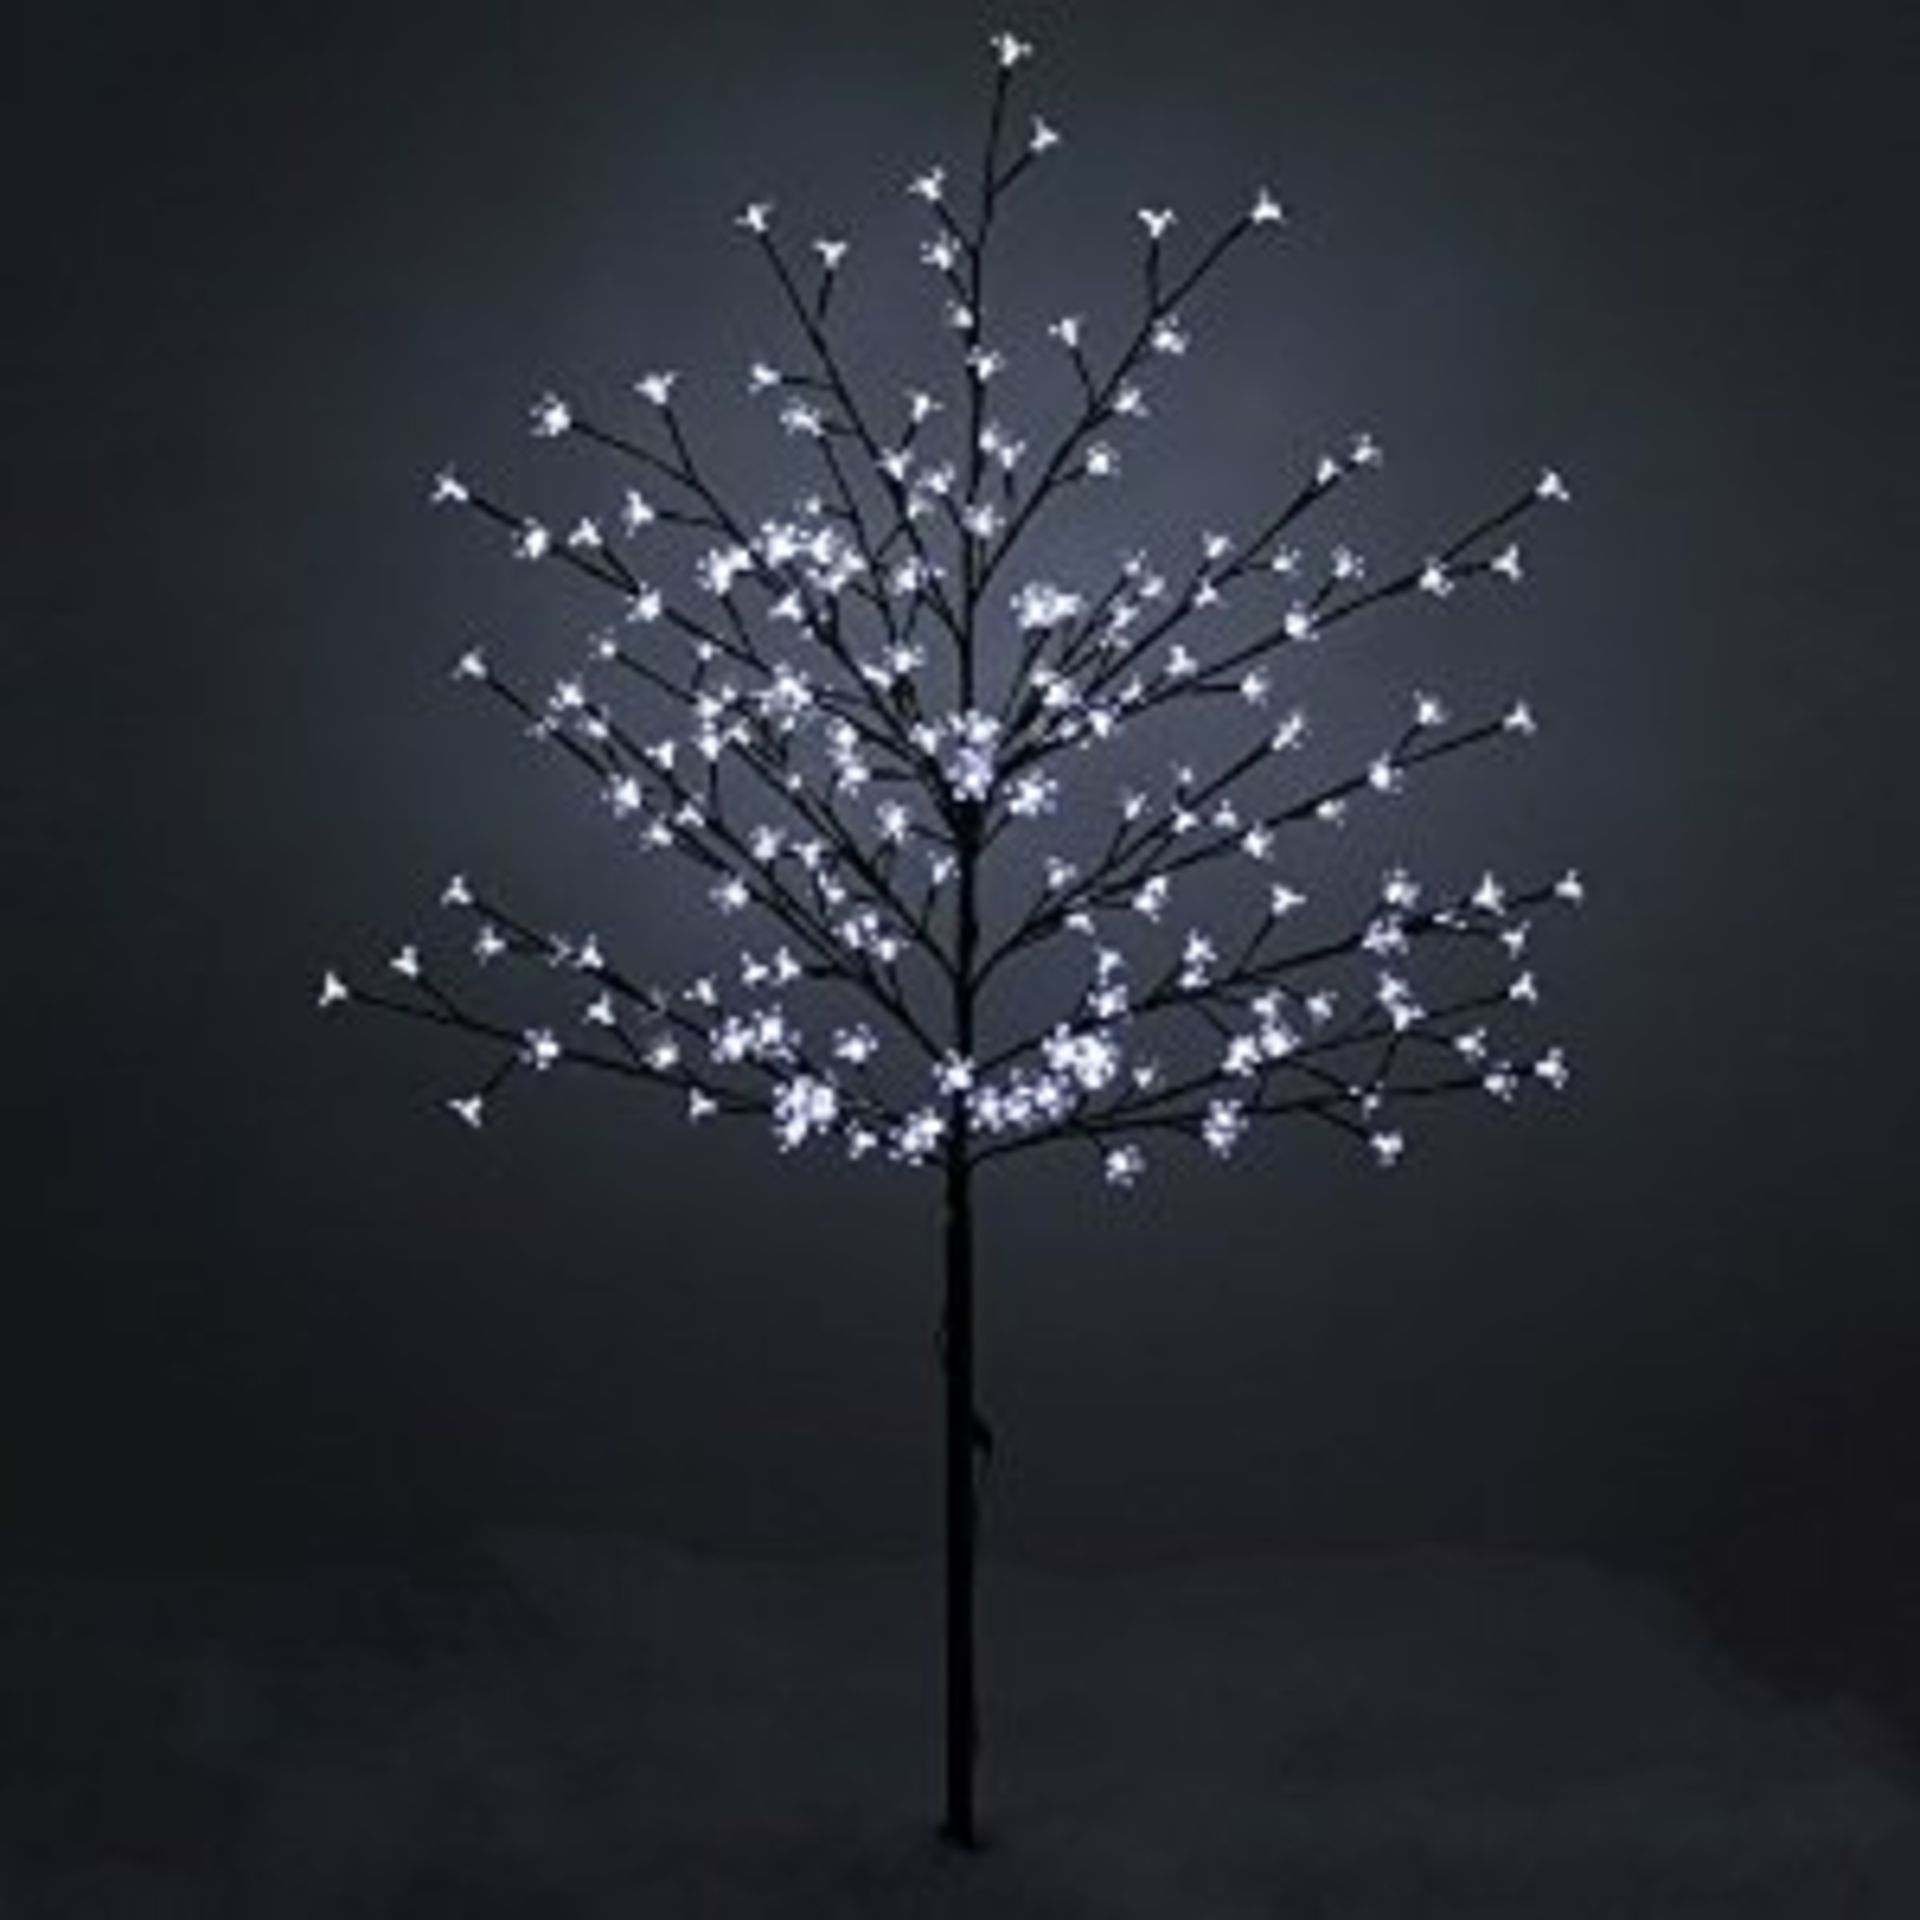 Lot 12052 - V Brand New 150cm Snow White LED Blossom Tree For Indoor And Outdoor Use RRP £54.99